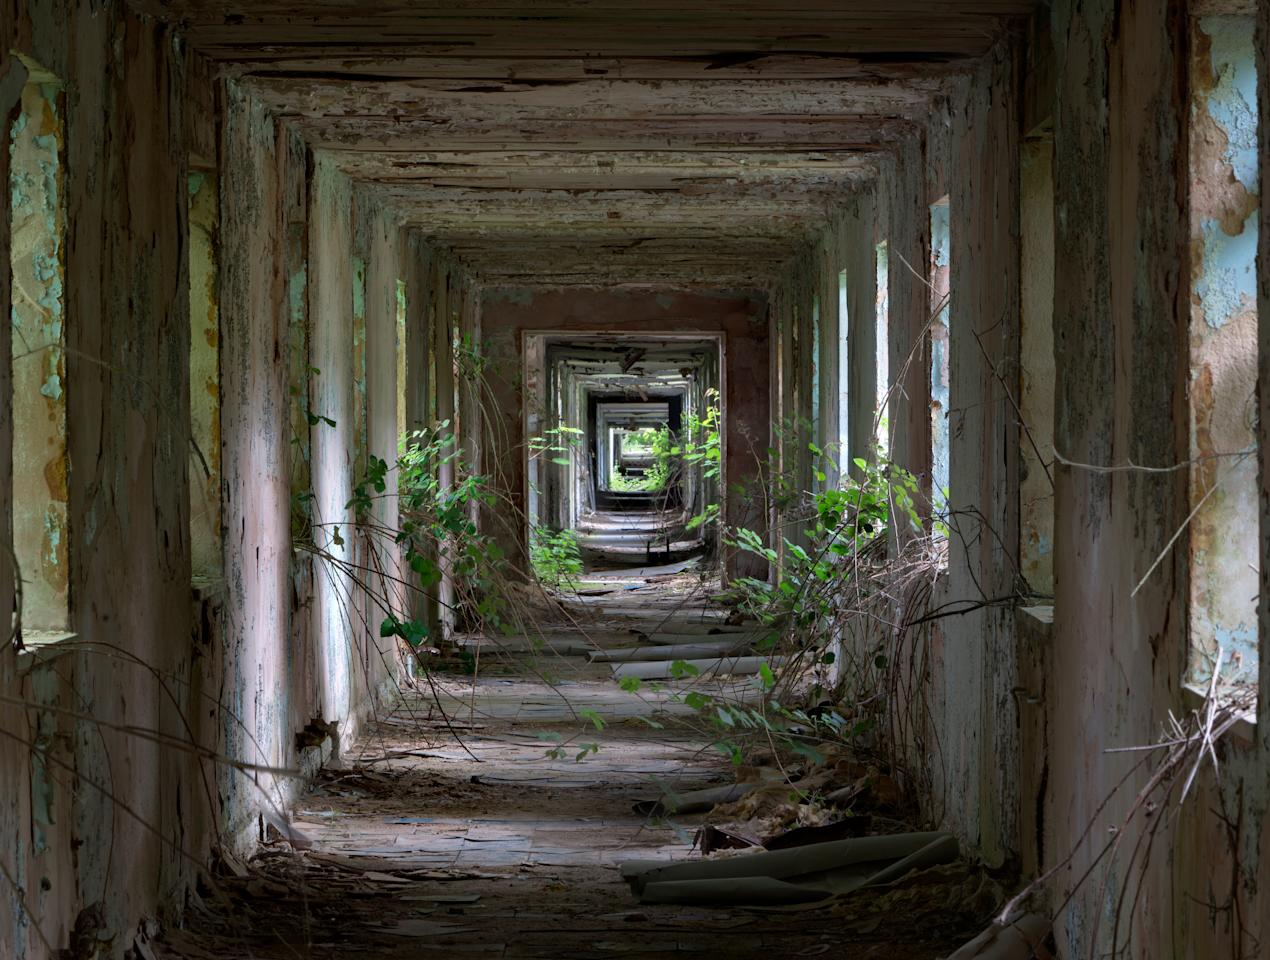 <p>The overall winning image was shot by Matt Emmett from Reading and taken at RAF Nocton Hall, an abandoned former military hospital. He takes home the £2,500 prize. (Historic Photographer of the Year) </p>